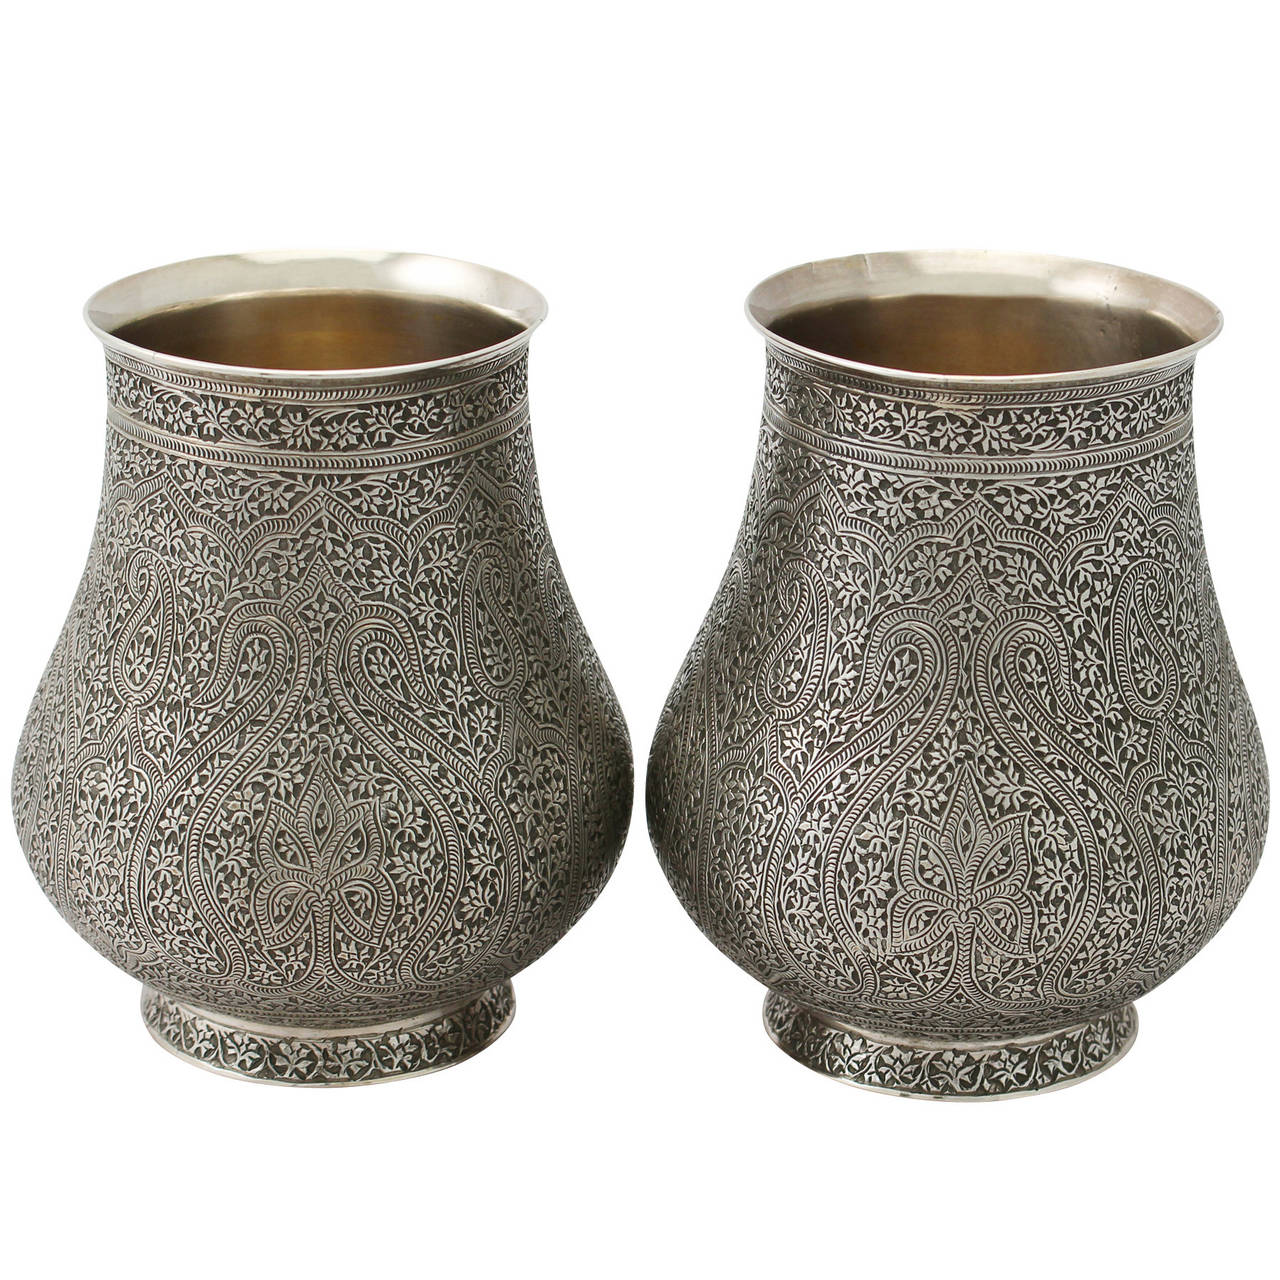 Silver Vases Pair Of Indian Sterling Silver Vases Antique Circa 1880 At 1Stdibs